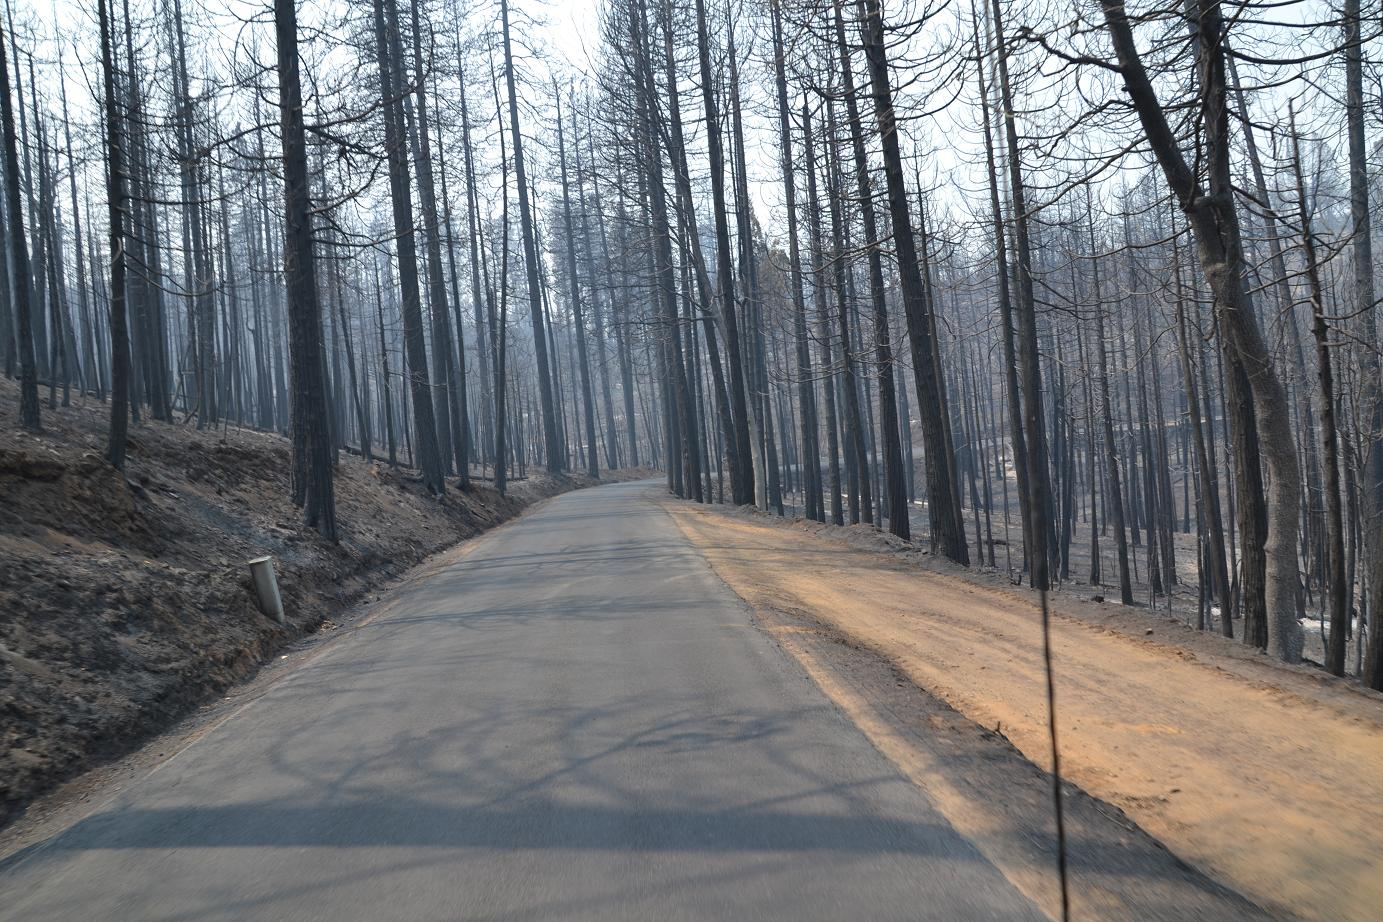 Bare trees on both sides of the road